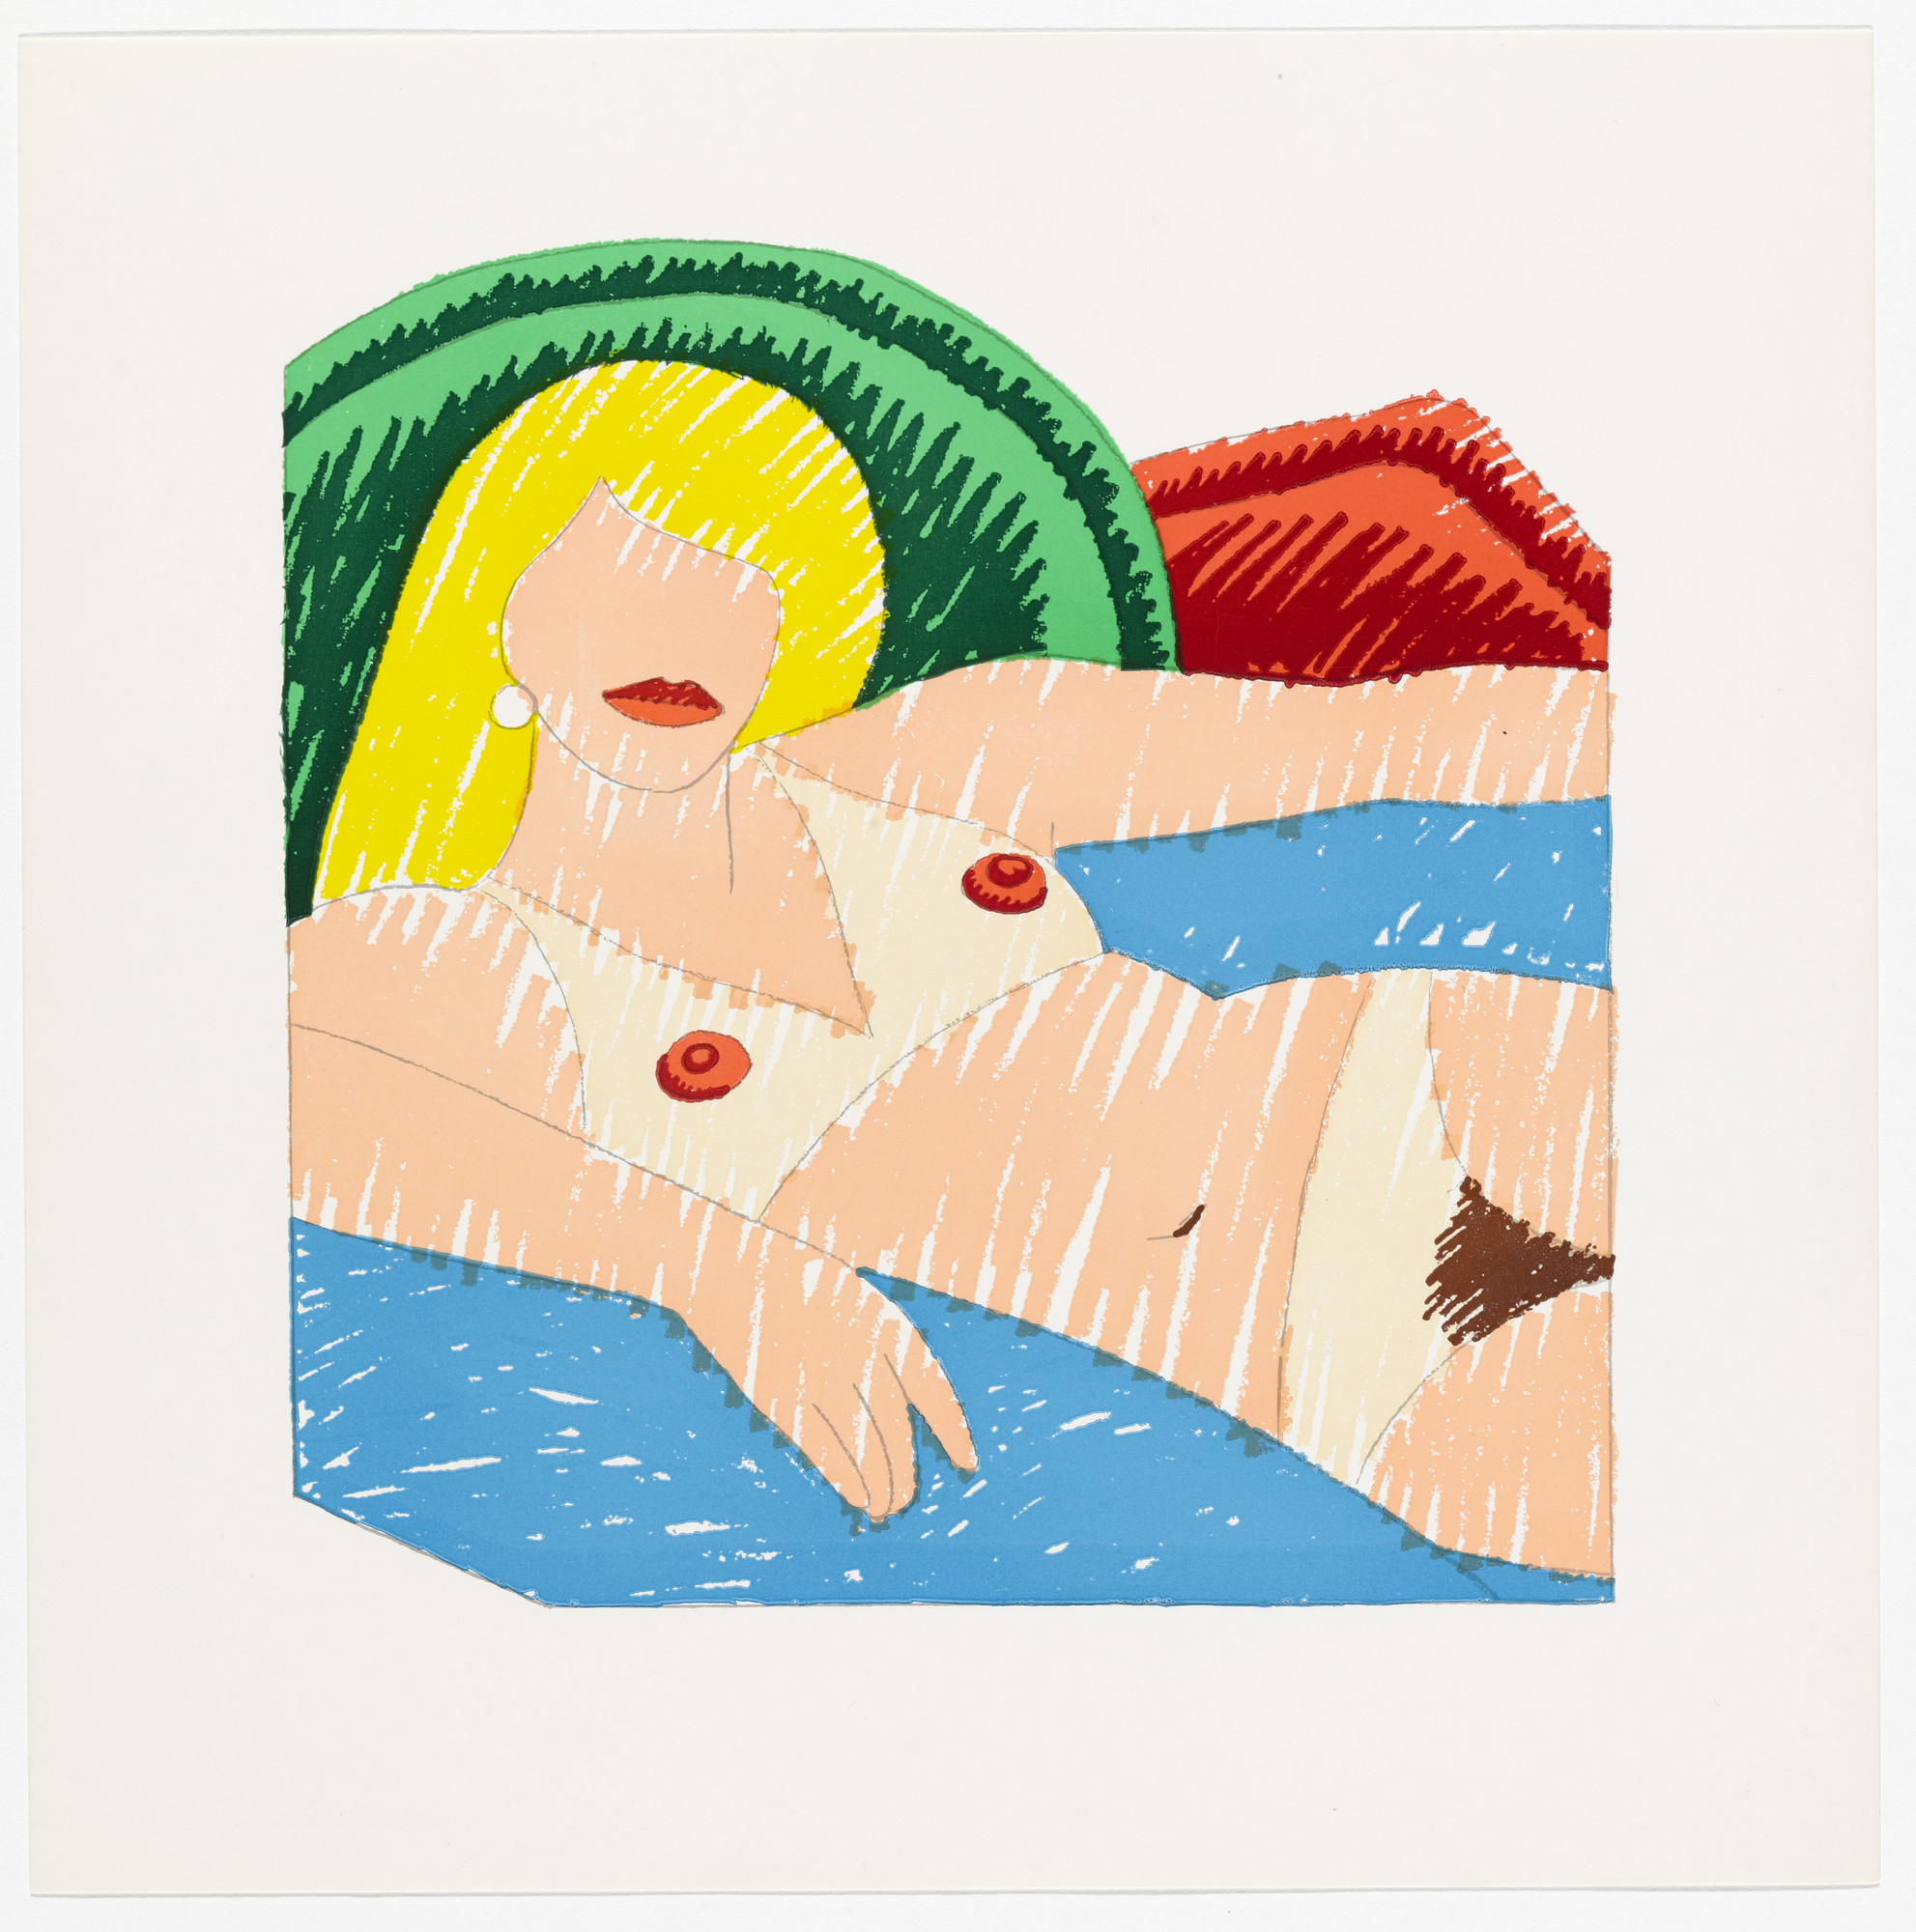 Tom Wesselmann. Shiny Nude from the Rubber Stamp Portfolio. 1977